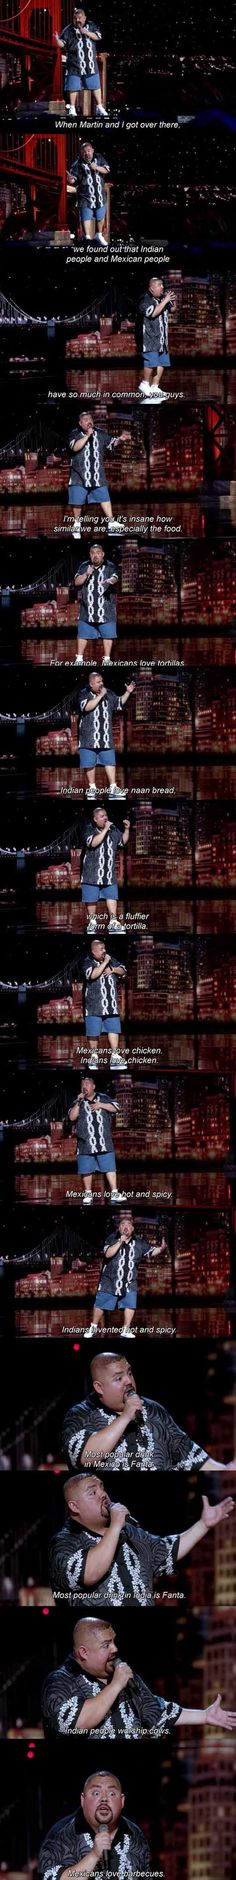 Gabriel Iglesias. Jokes on race and racist humor  Dump A Day Funny Pictures Of The Day - 62 Pics. Stereotypes and ethnic funnies comparing Mexicans with Indians